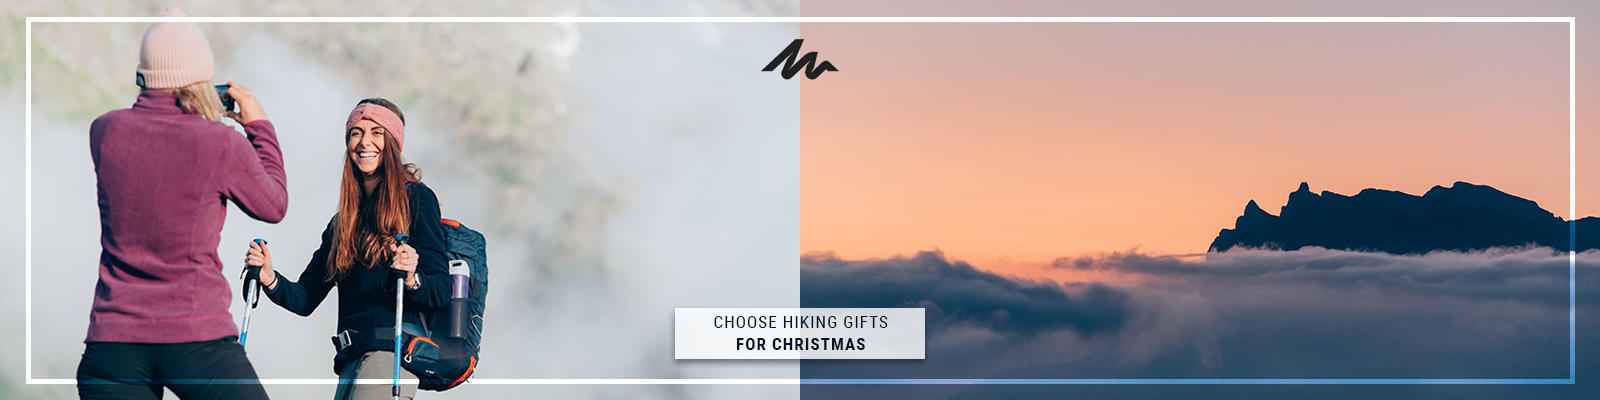 choose hiking gifts for christmas quechua decathlon